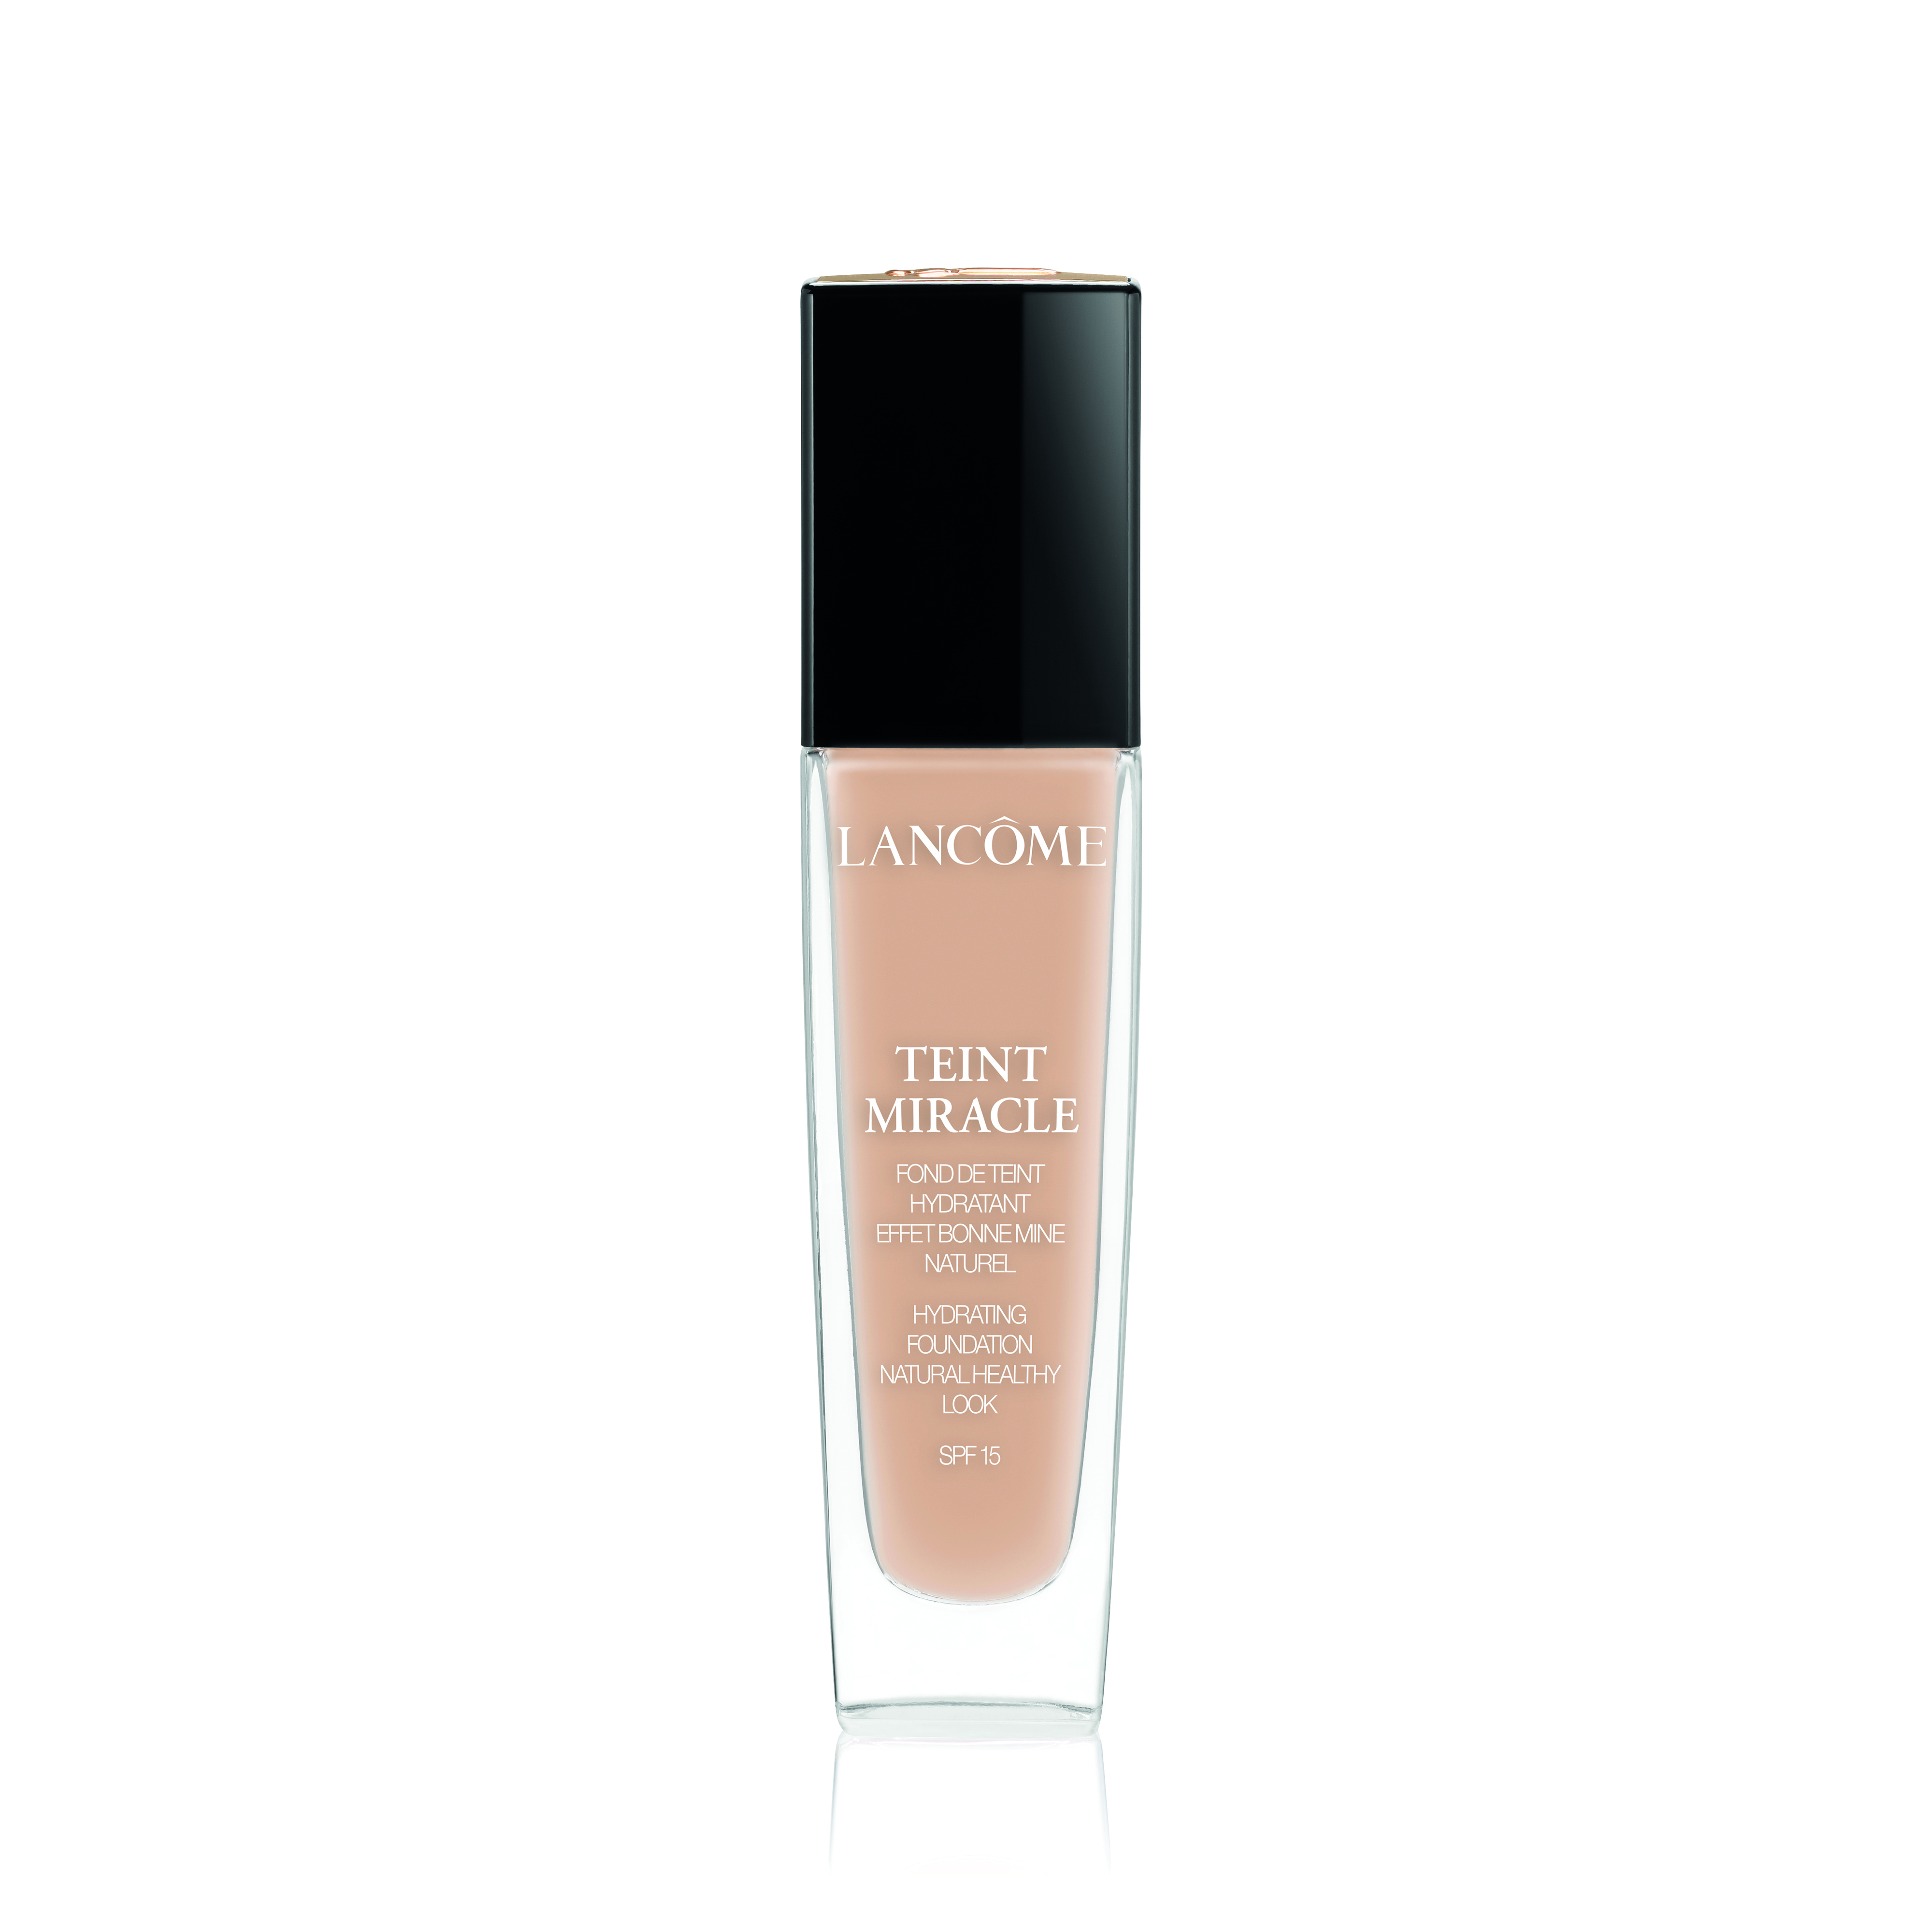 Teint Miracle Foundation 04 Beige Nature